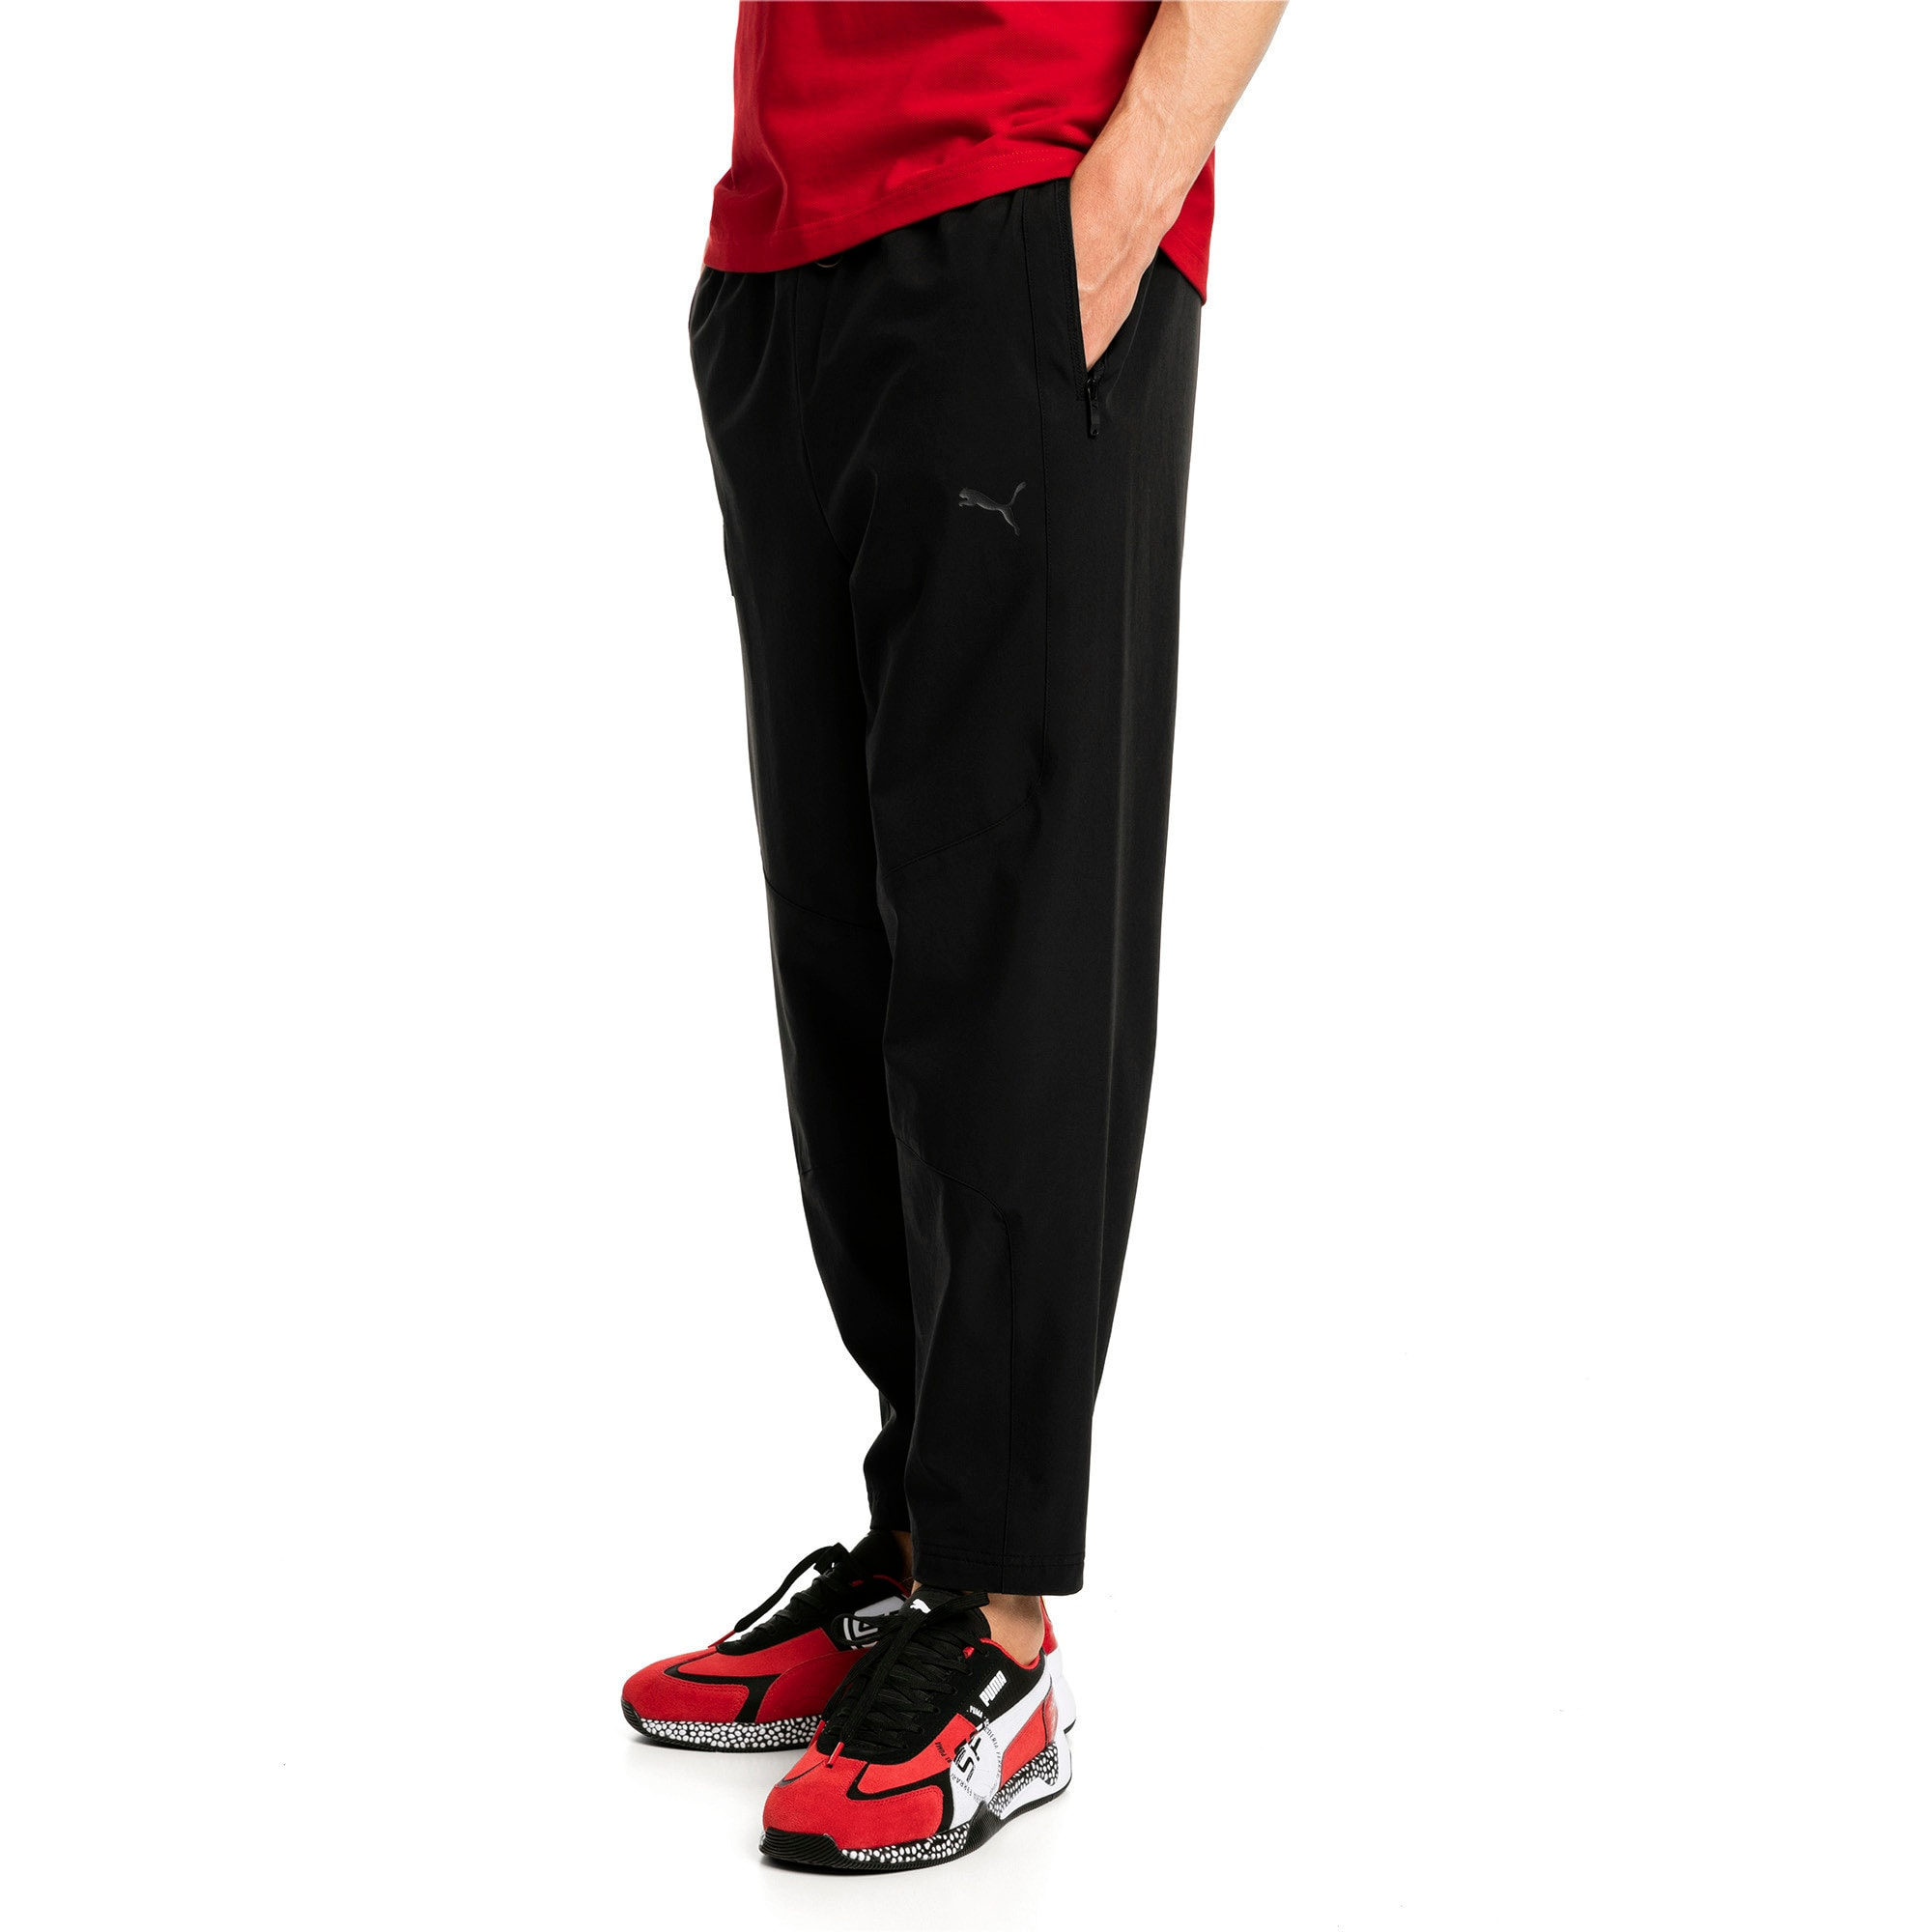 Thumbnail 1 of Scuderia Ferrari Life Men's Sweatpants, Puma Black, medium